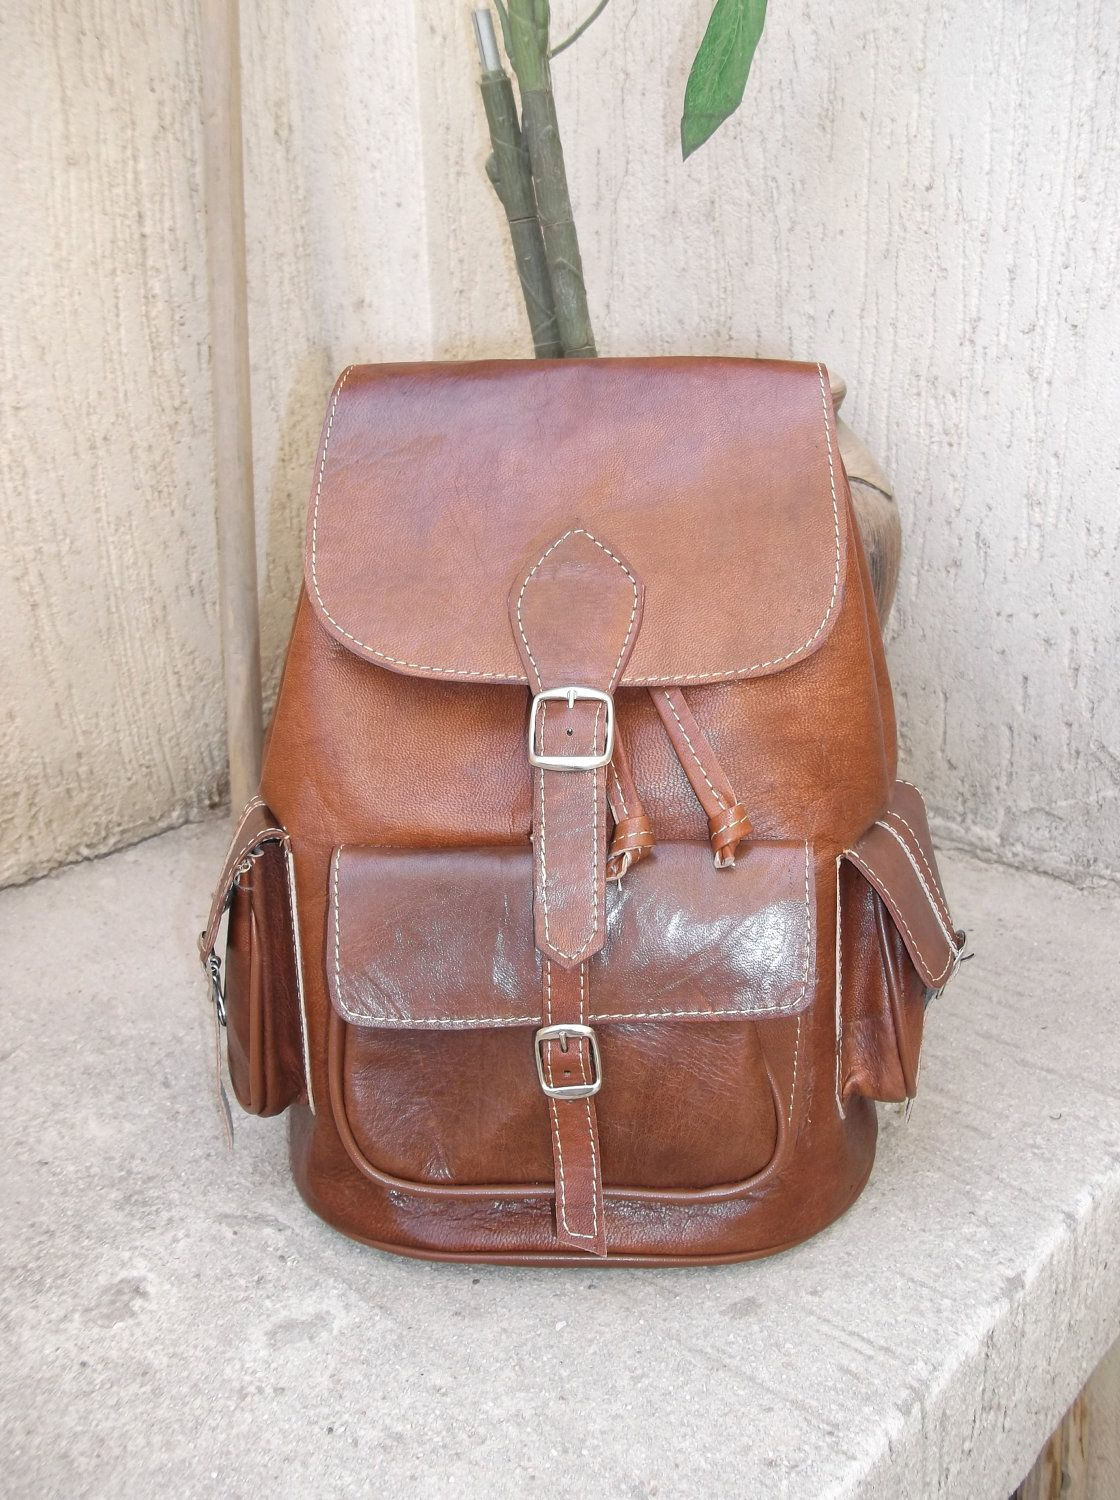 68fe01b5fc Moroccan Leather Backpack Rucksack back bag soulder vintage purse travel bag  shoulder women men bag.  69.99